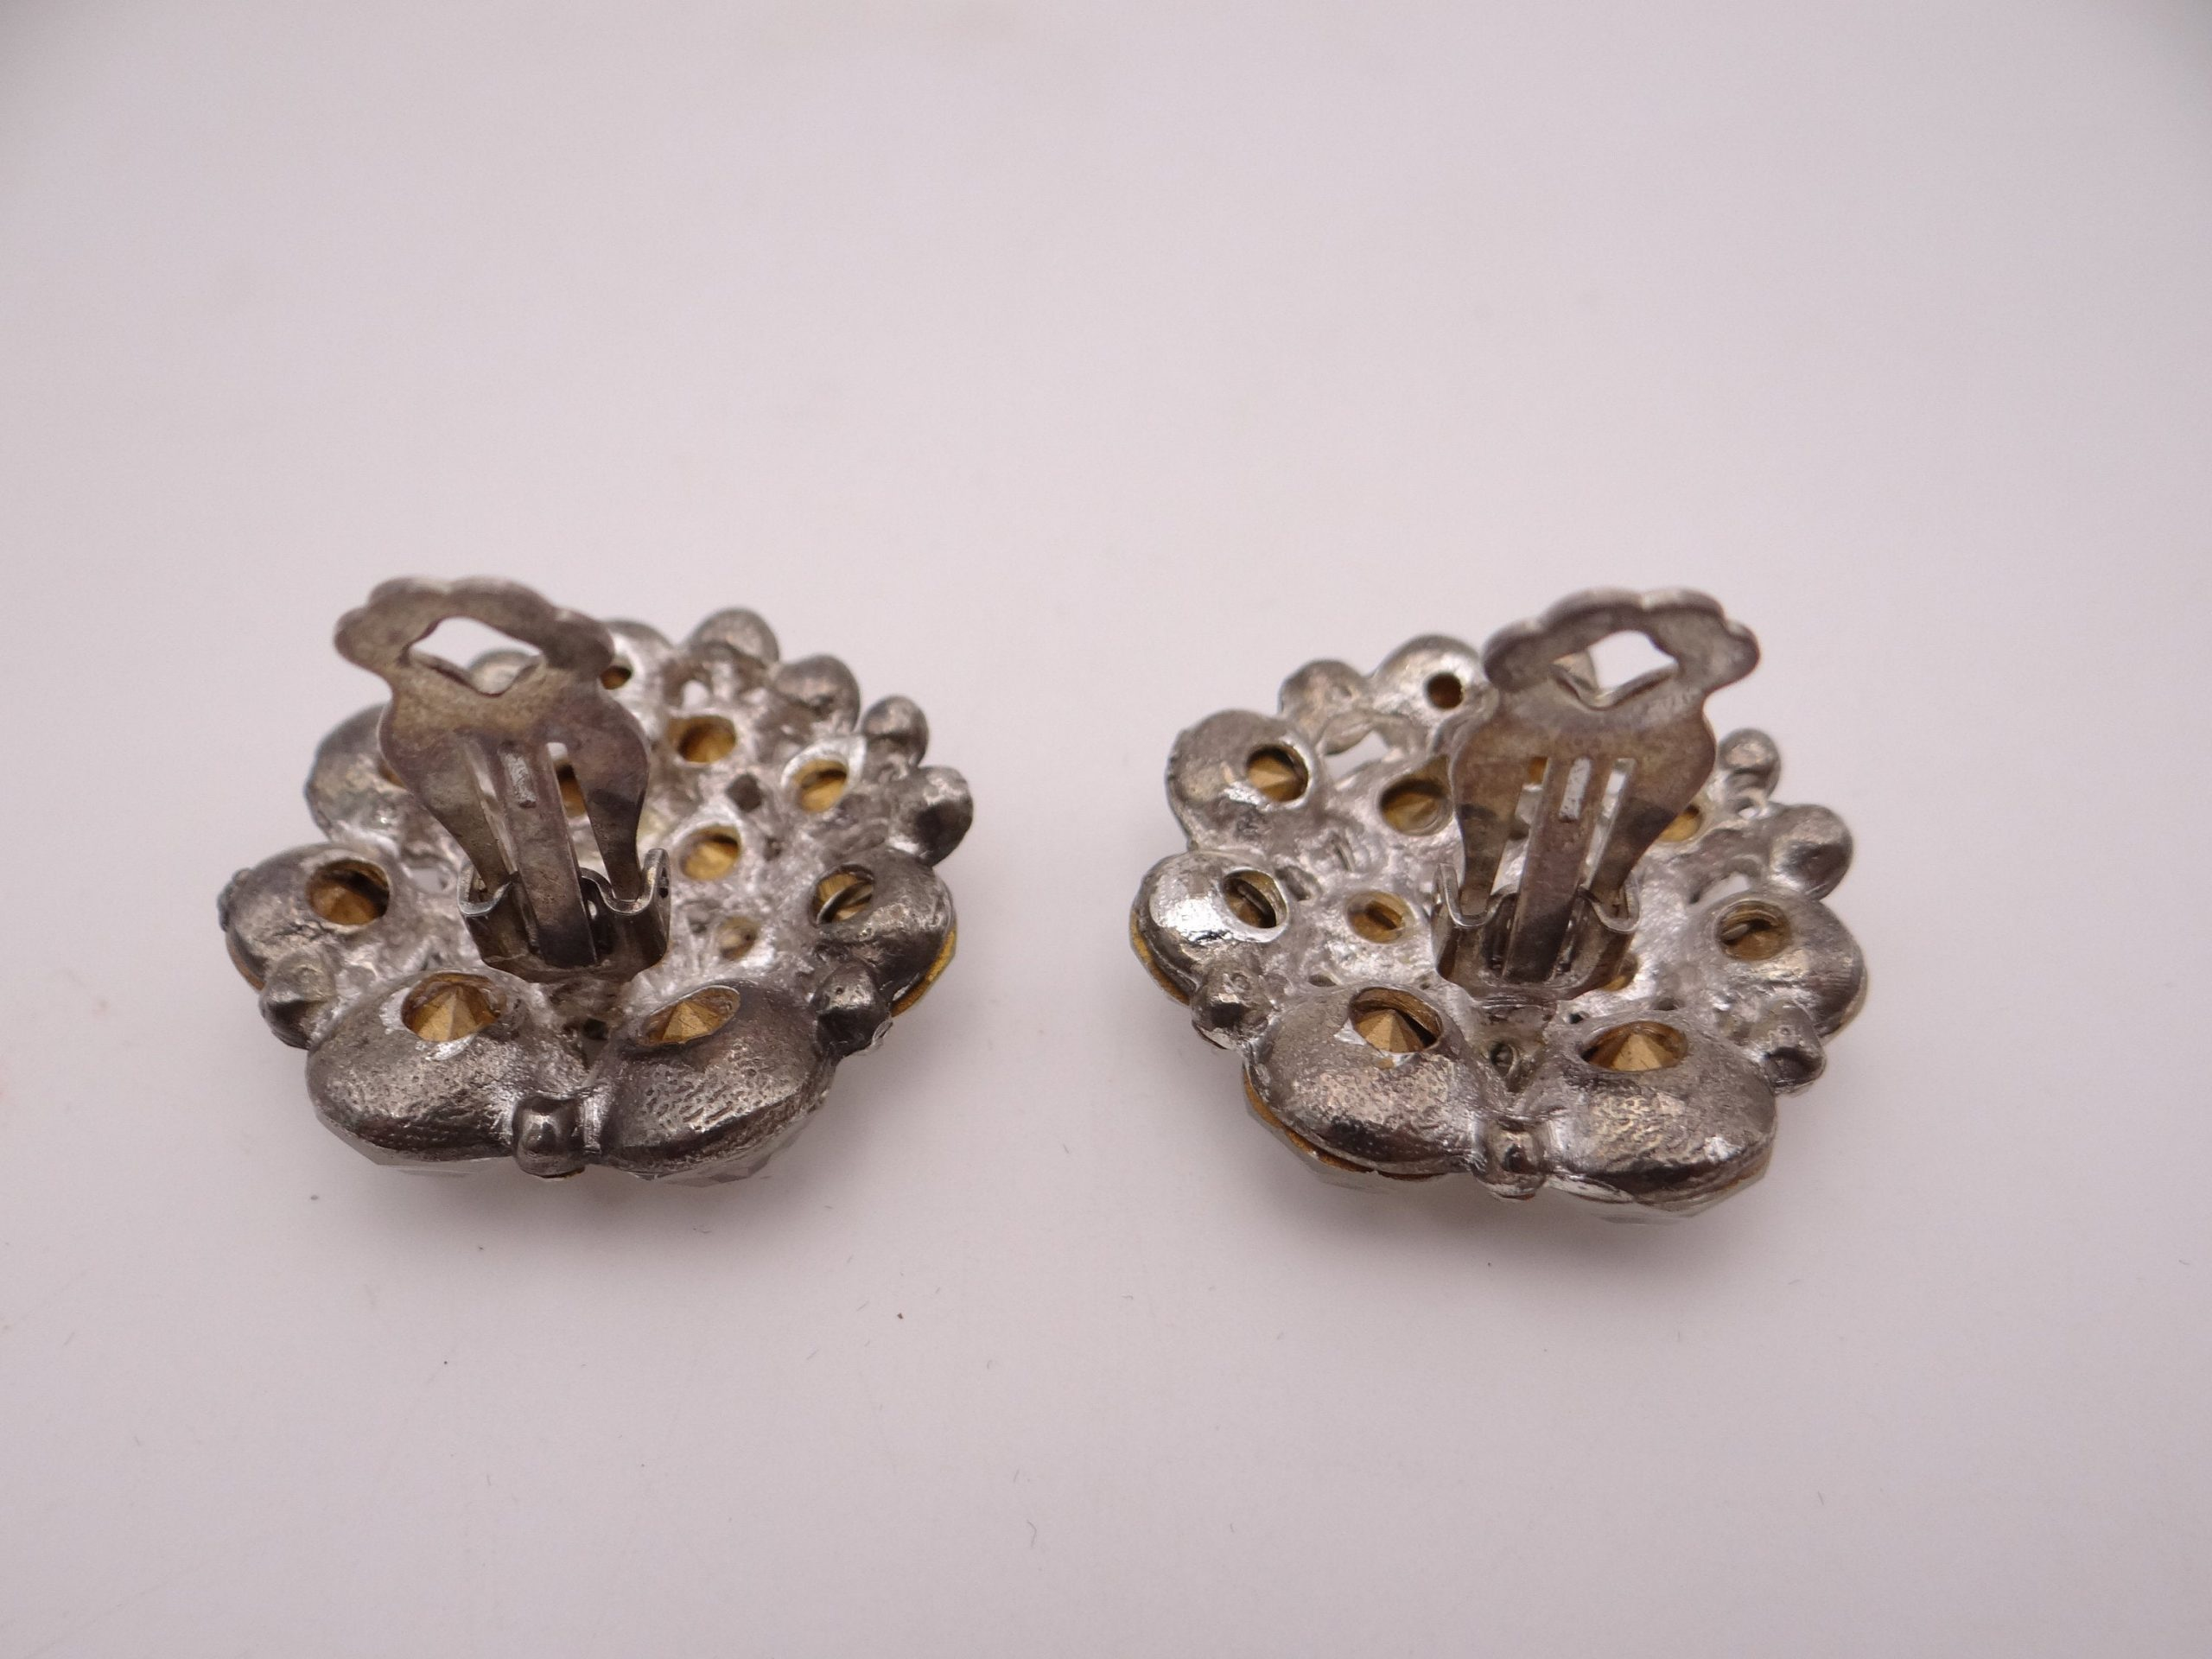 Vintage Crystal Clear Rhinestone Clip On Earrings They are about 1 14 Inches Square. The Round Stones are Set in Shiny Silver Metal D35